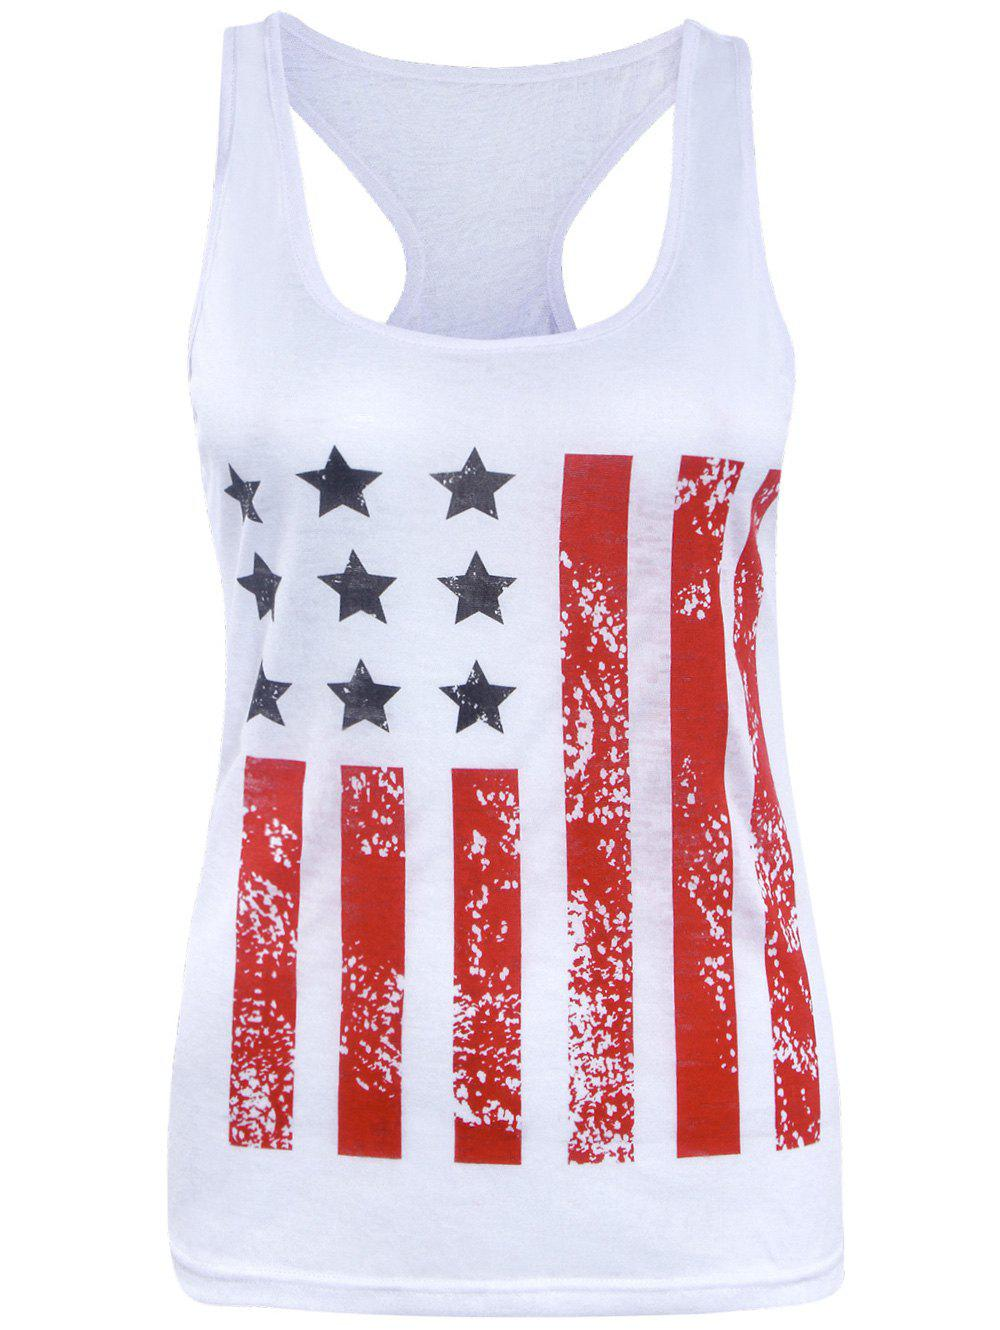 American Flag Racerback Patriotic Tank Top the mountain women s cotton patriotic horse head design tank top shirt blue